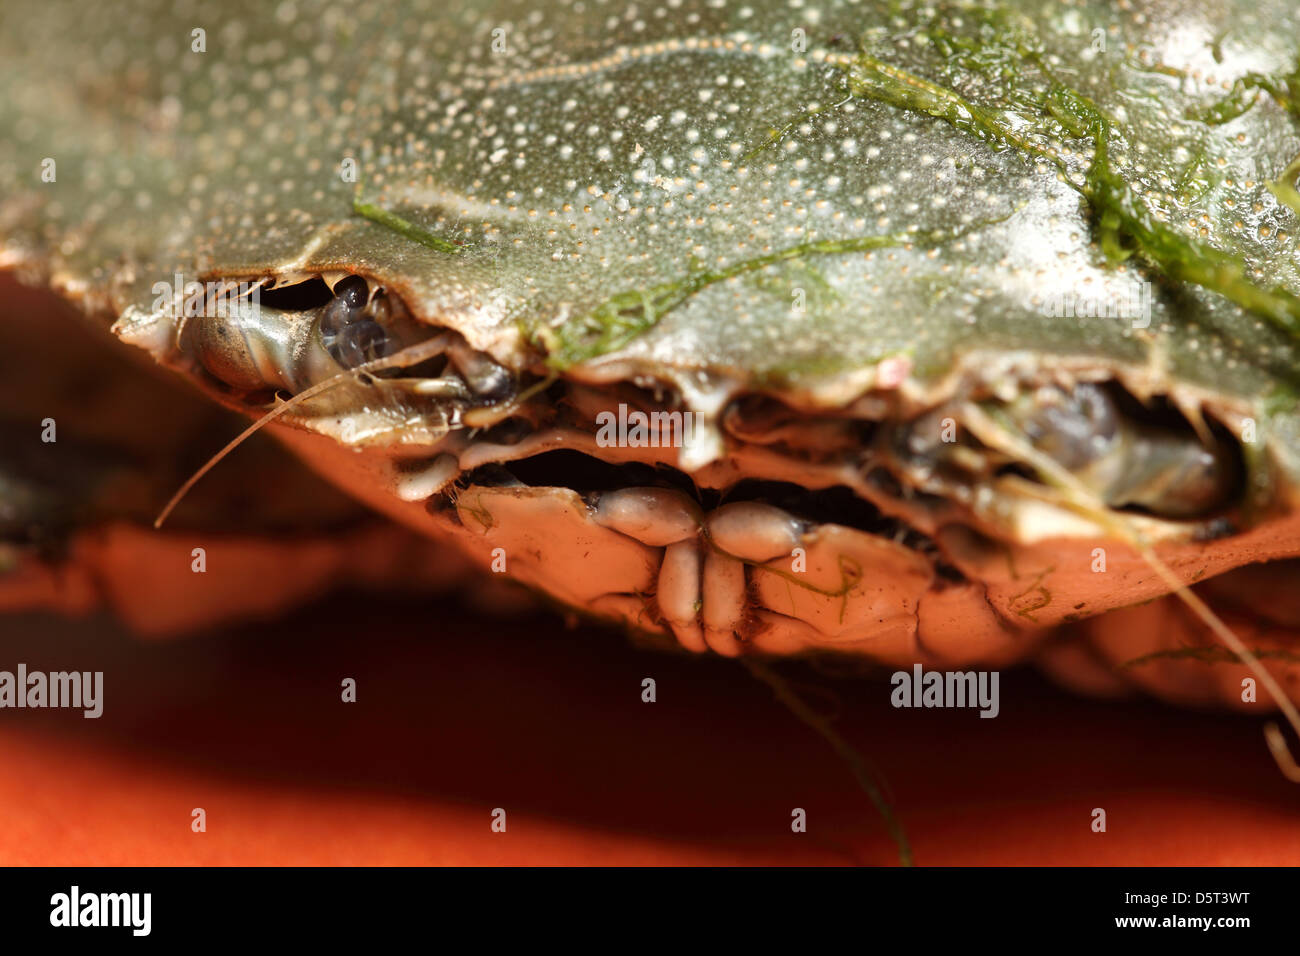 close up of a crab mouth - Stock Image